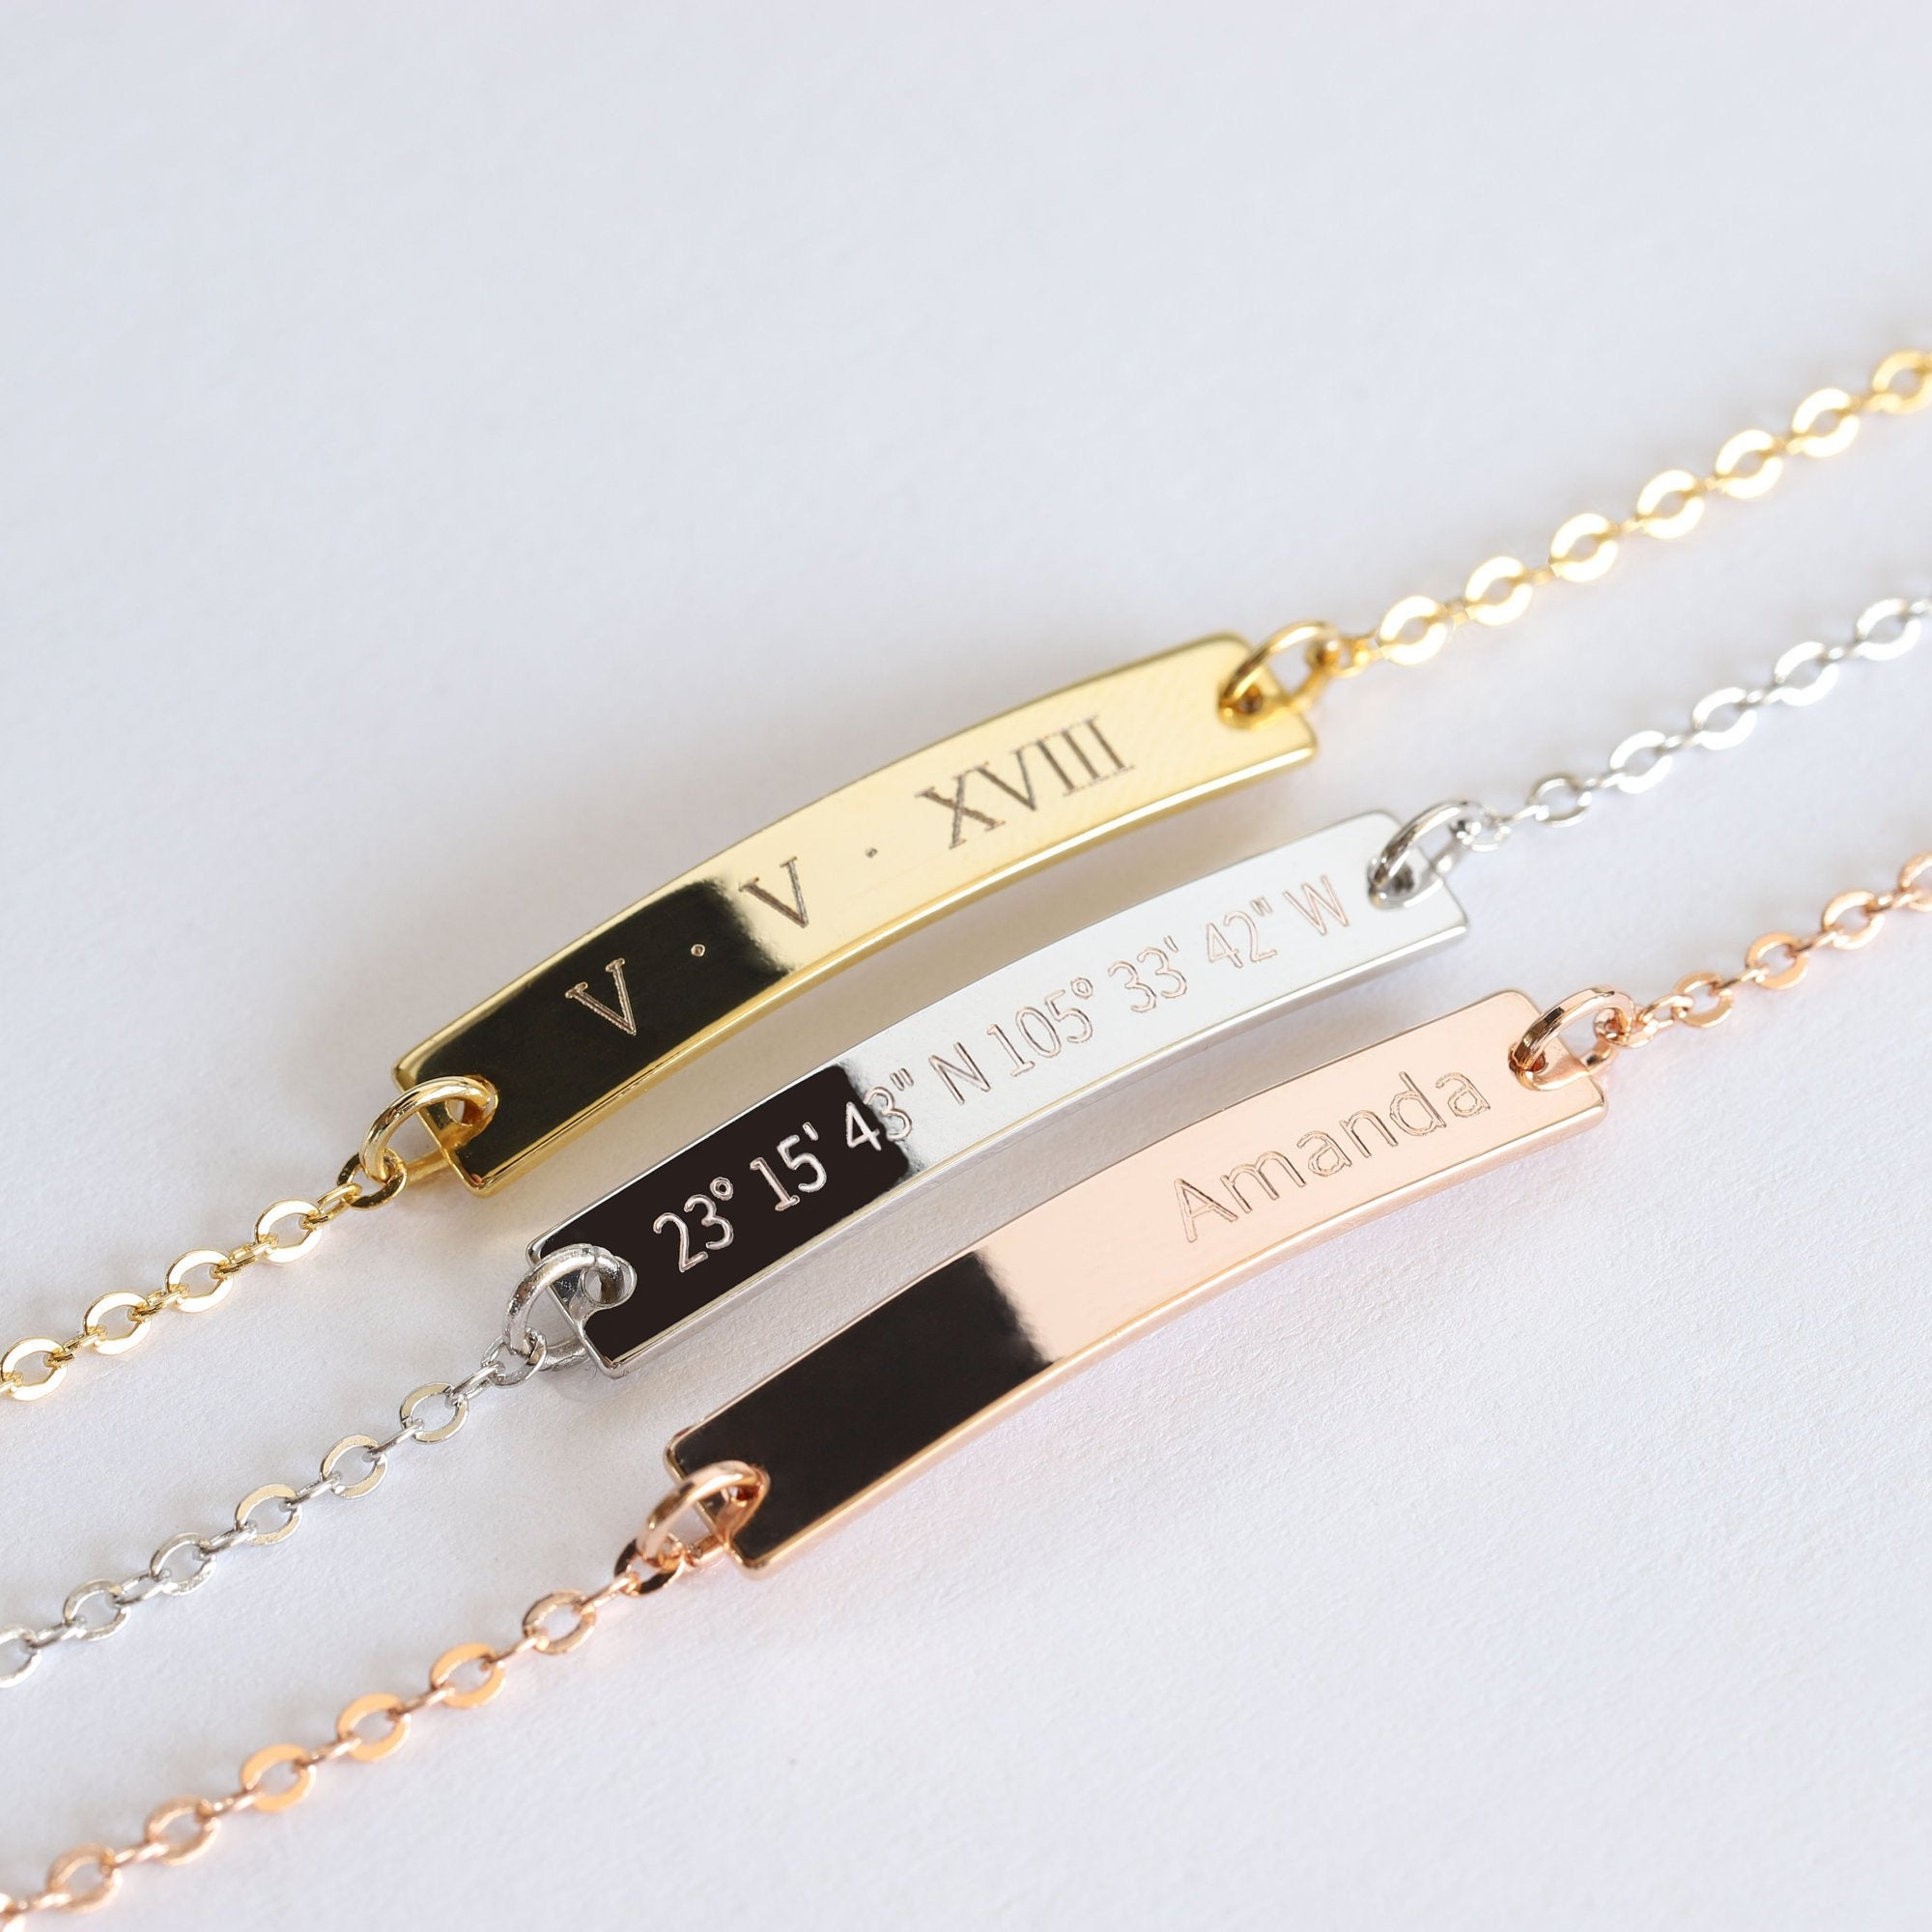 Bridesmaid Gift Personalized Bracelet Engraved Bracelet Custom Bridesmaid Bracelet - urweddinggifts